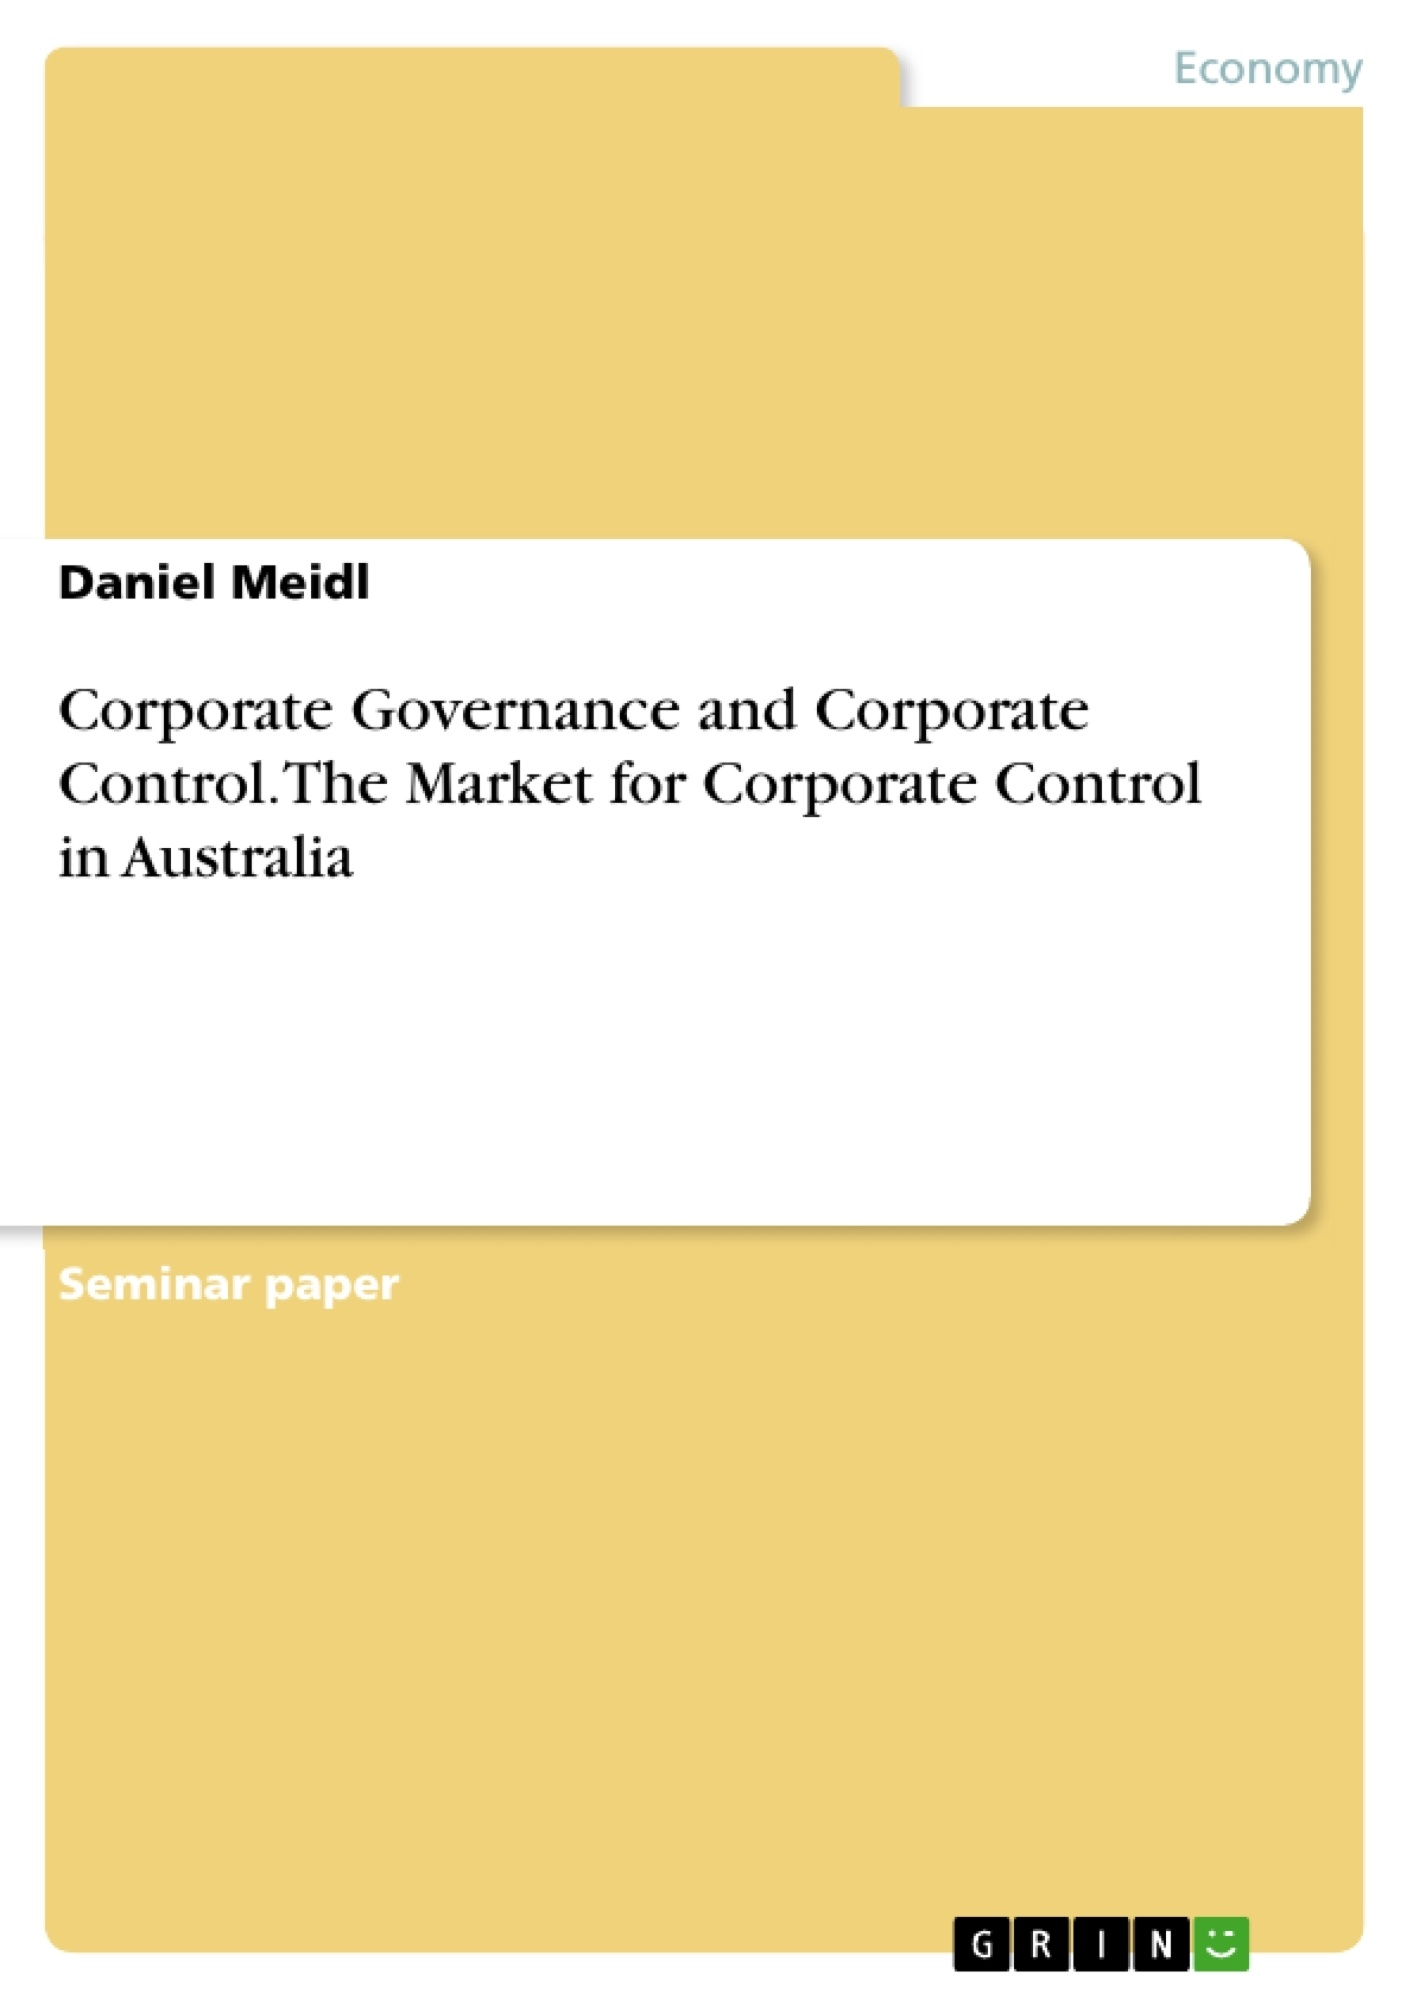 Title: Corporate Governance and Corporate Control. The Market for Corporate Control in Australia